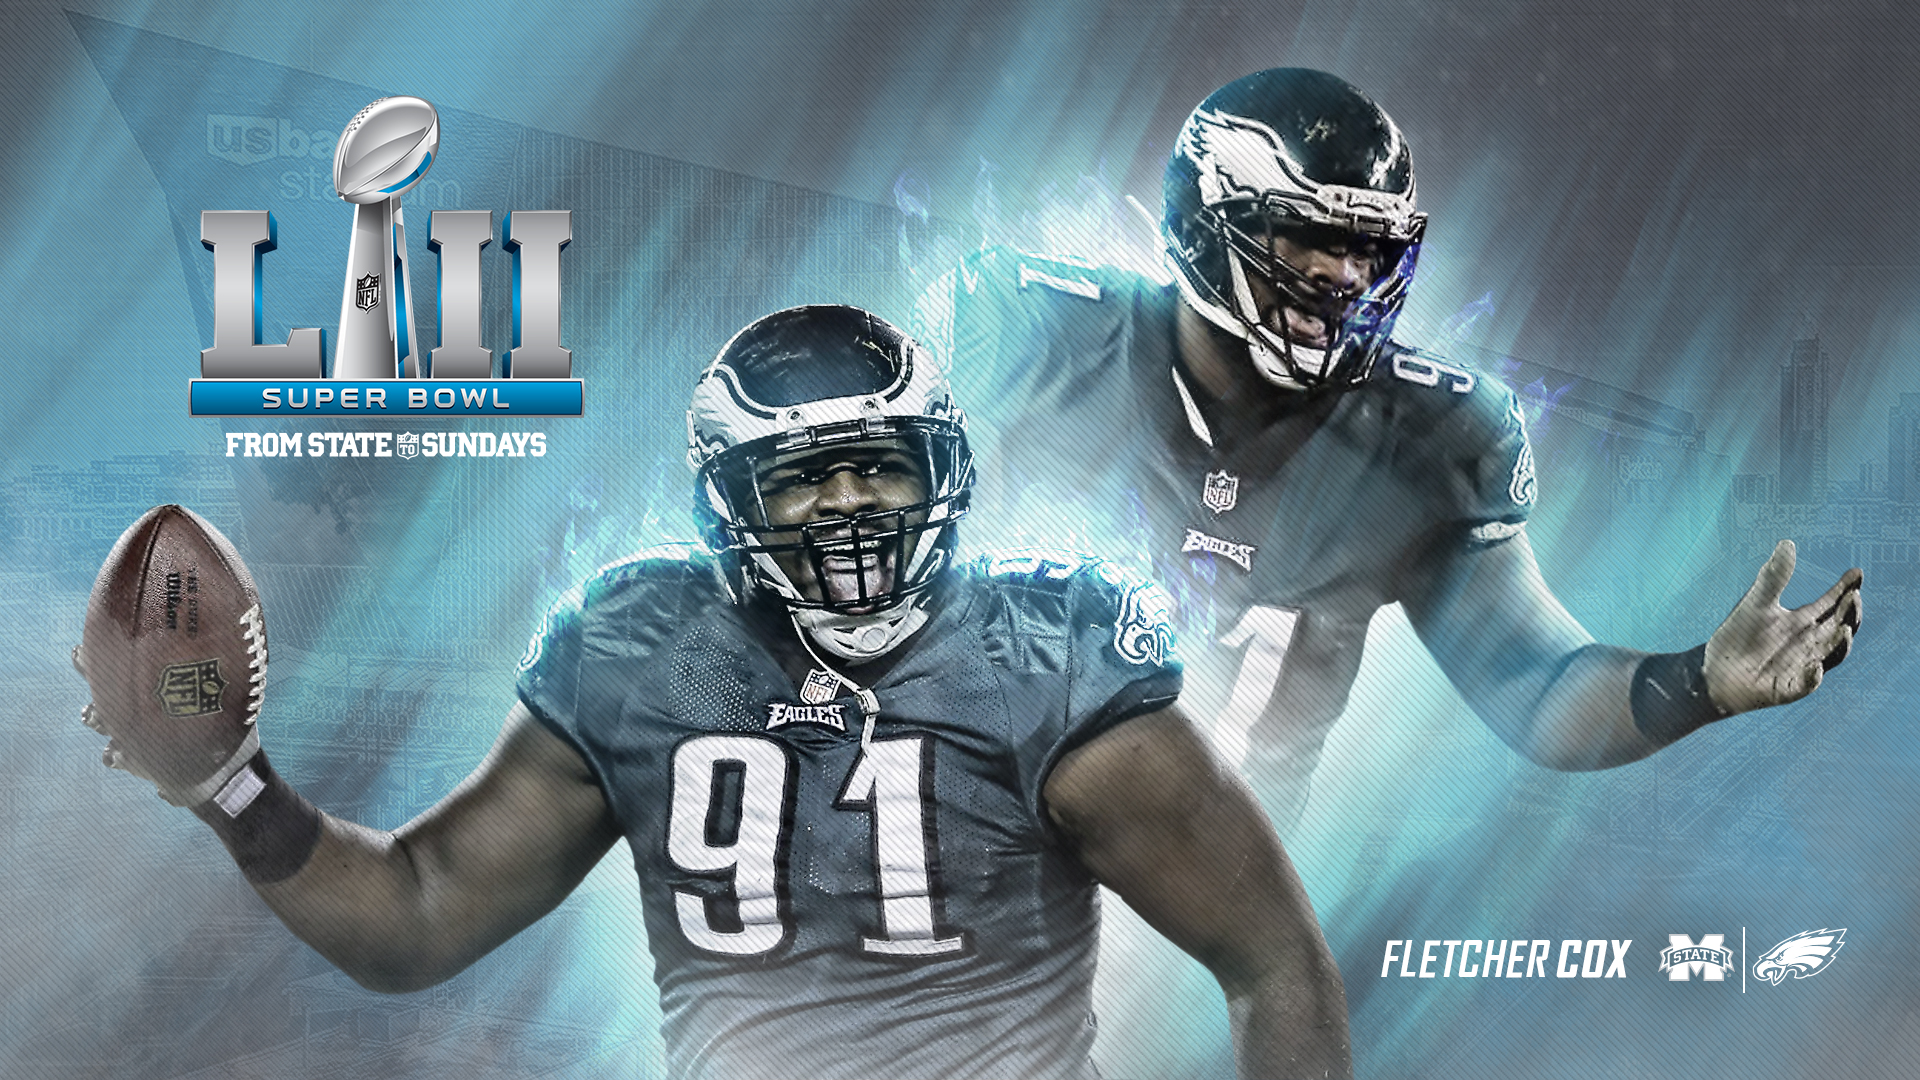 From State To The Super Bowl Fletcher Cox Aims For World